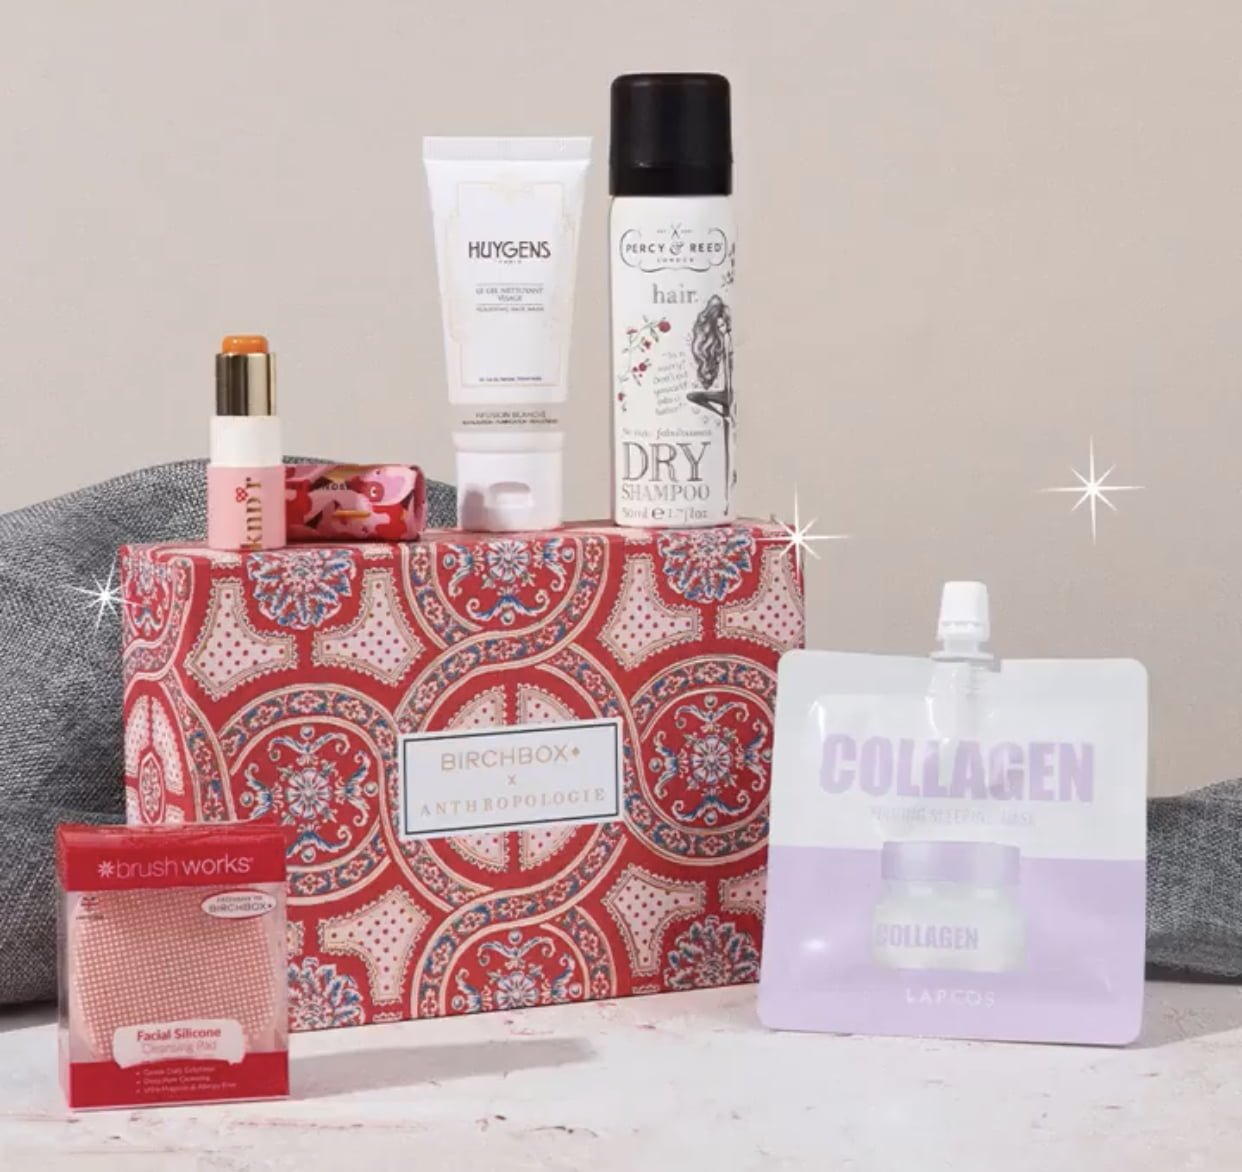 Birchbox Contents Reveal April 2020